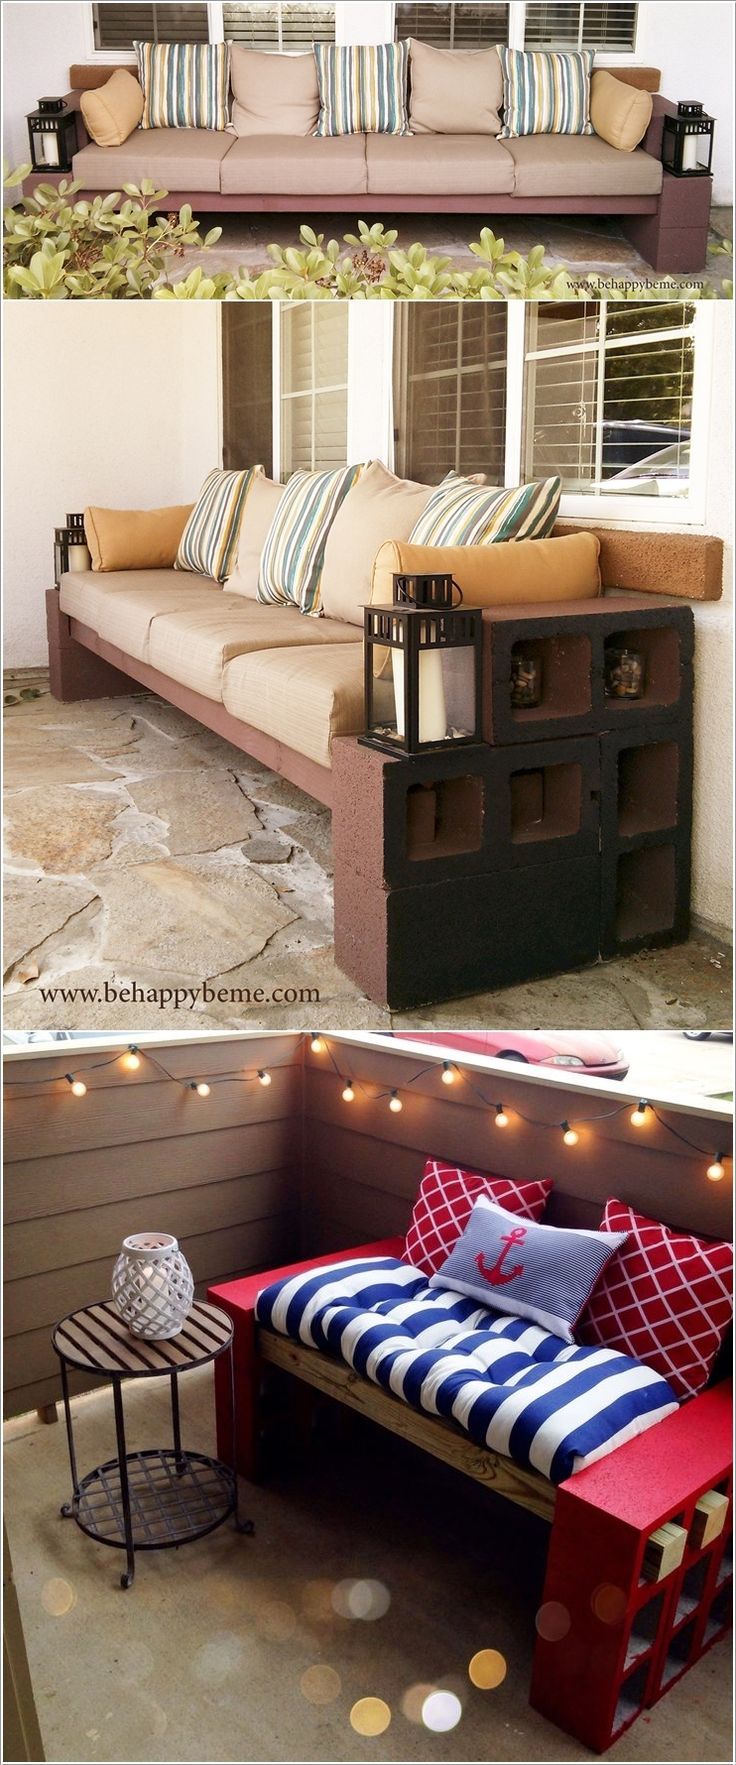 Diy patio furniture cinder blocks - 10 Wonderful And Cheap Diy Idea For Your Garden 7 Patio Benchdiy Benchdiy Patiocinder Block